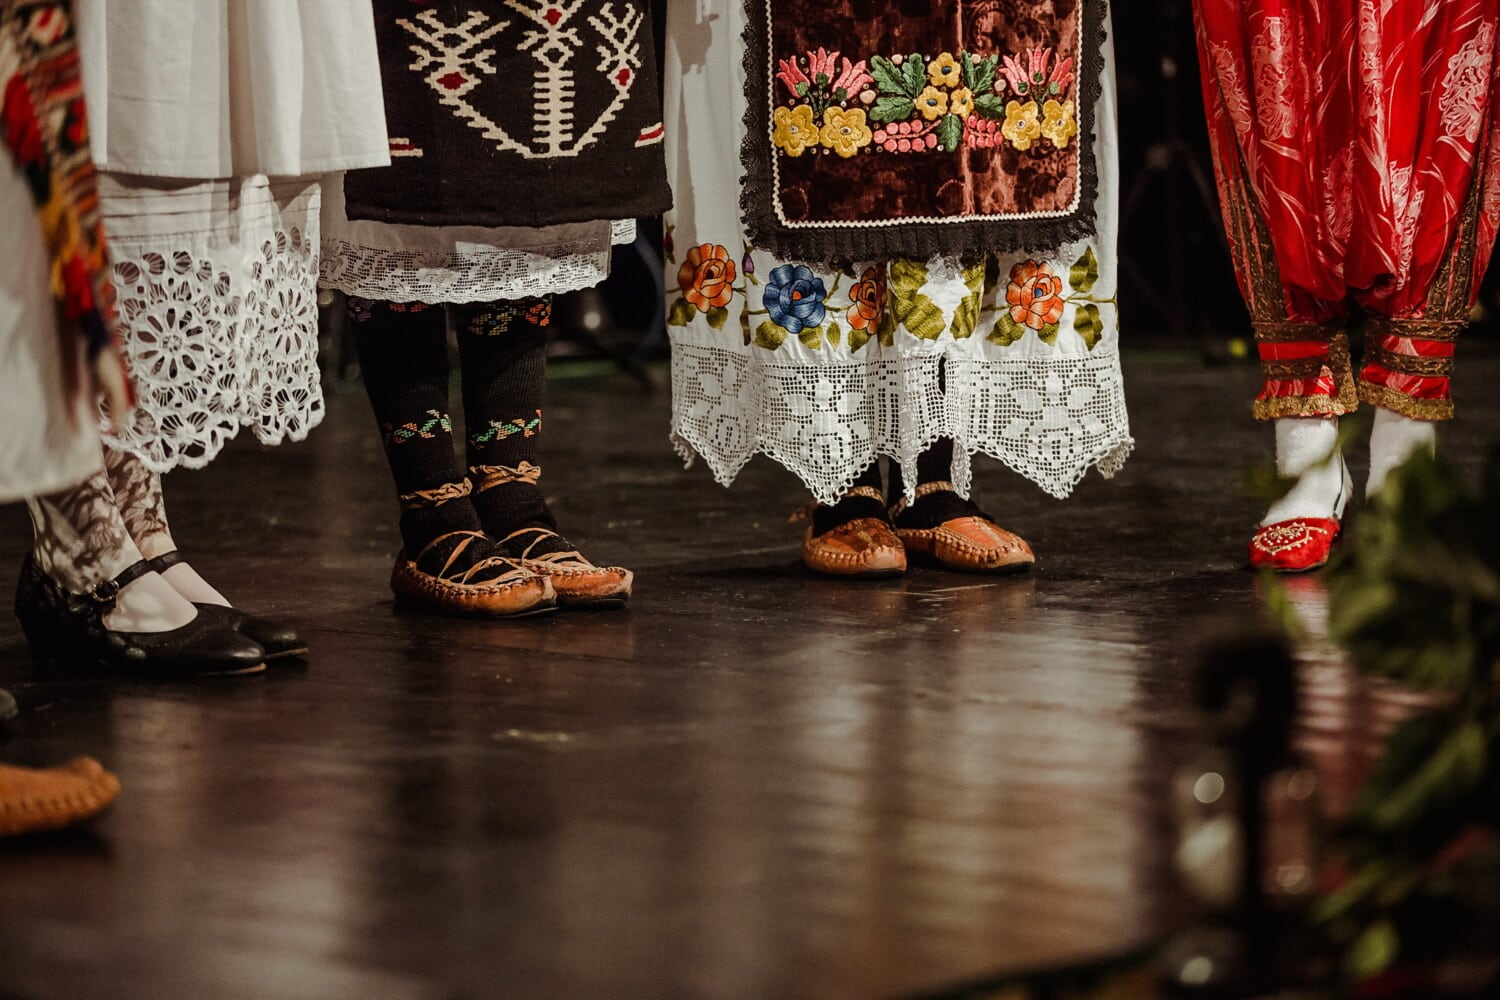 Serbia, shoes, traditional, outfit, clothes, folk, robe, people, fashion, art